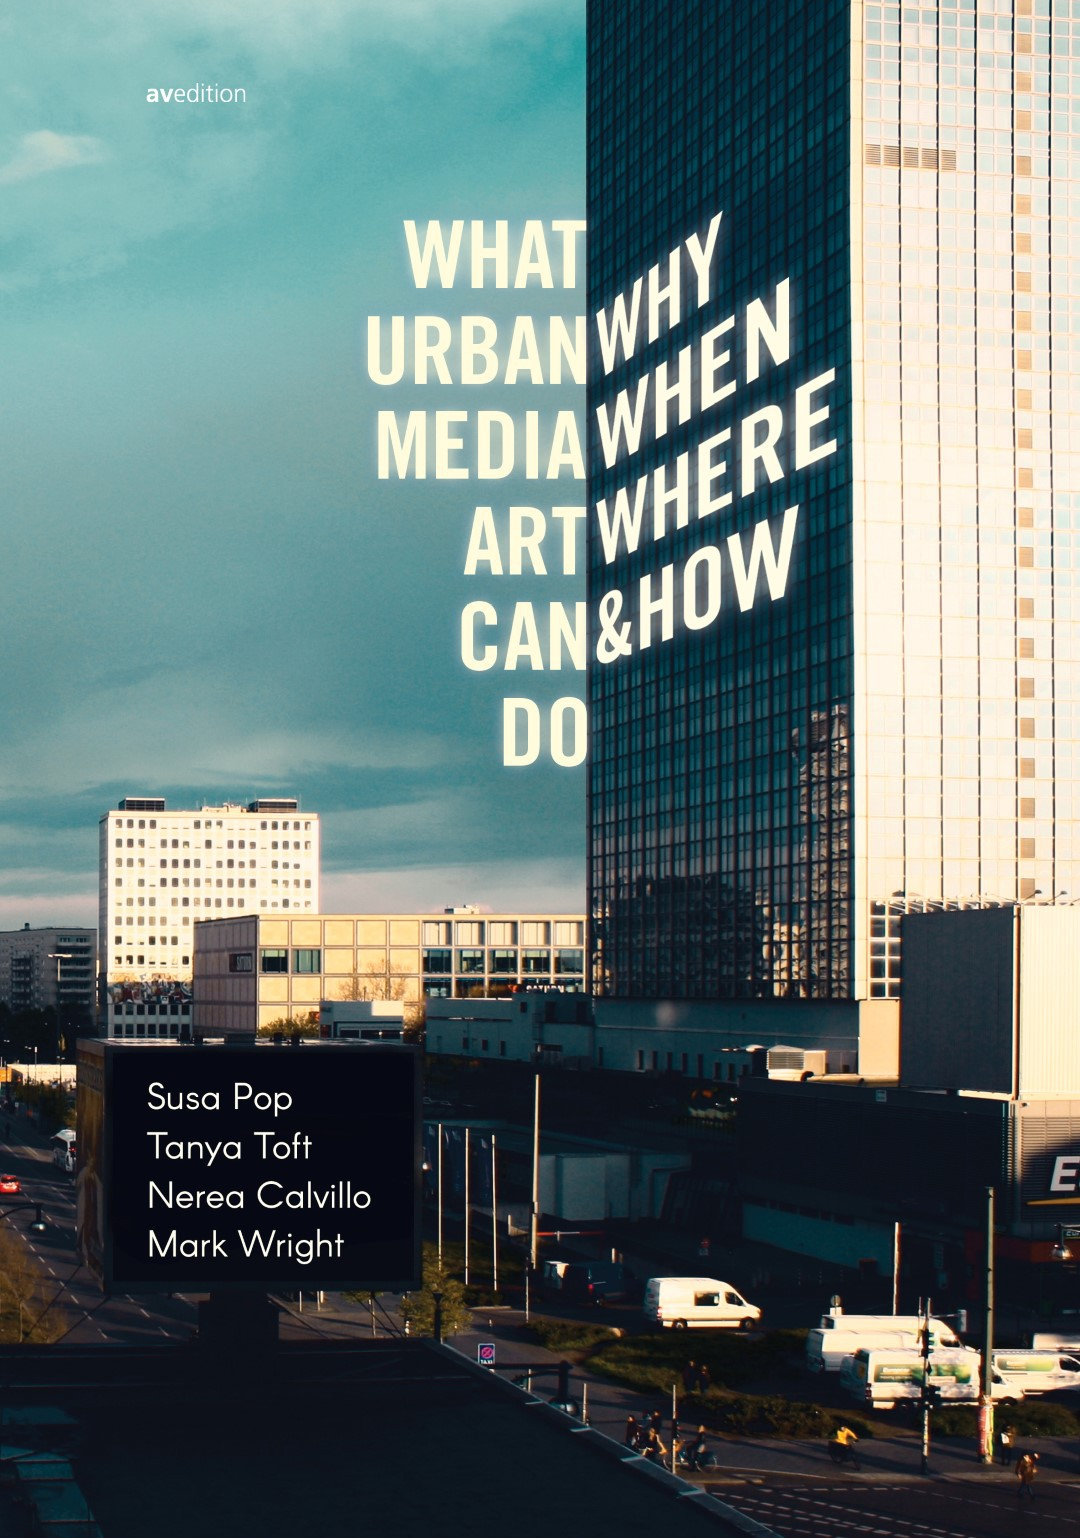 What Urban Media Art Can Do – Why, When, Where & How?  (avedition, 2016)